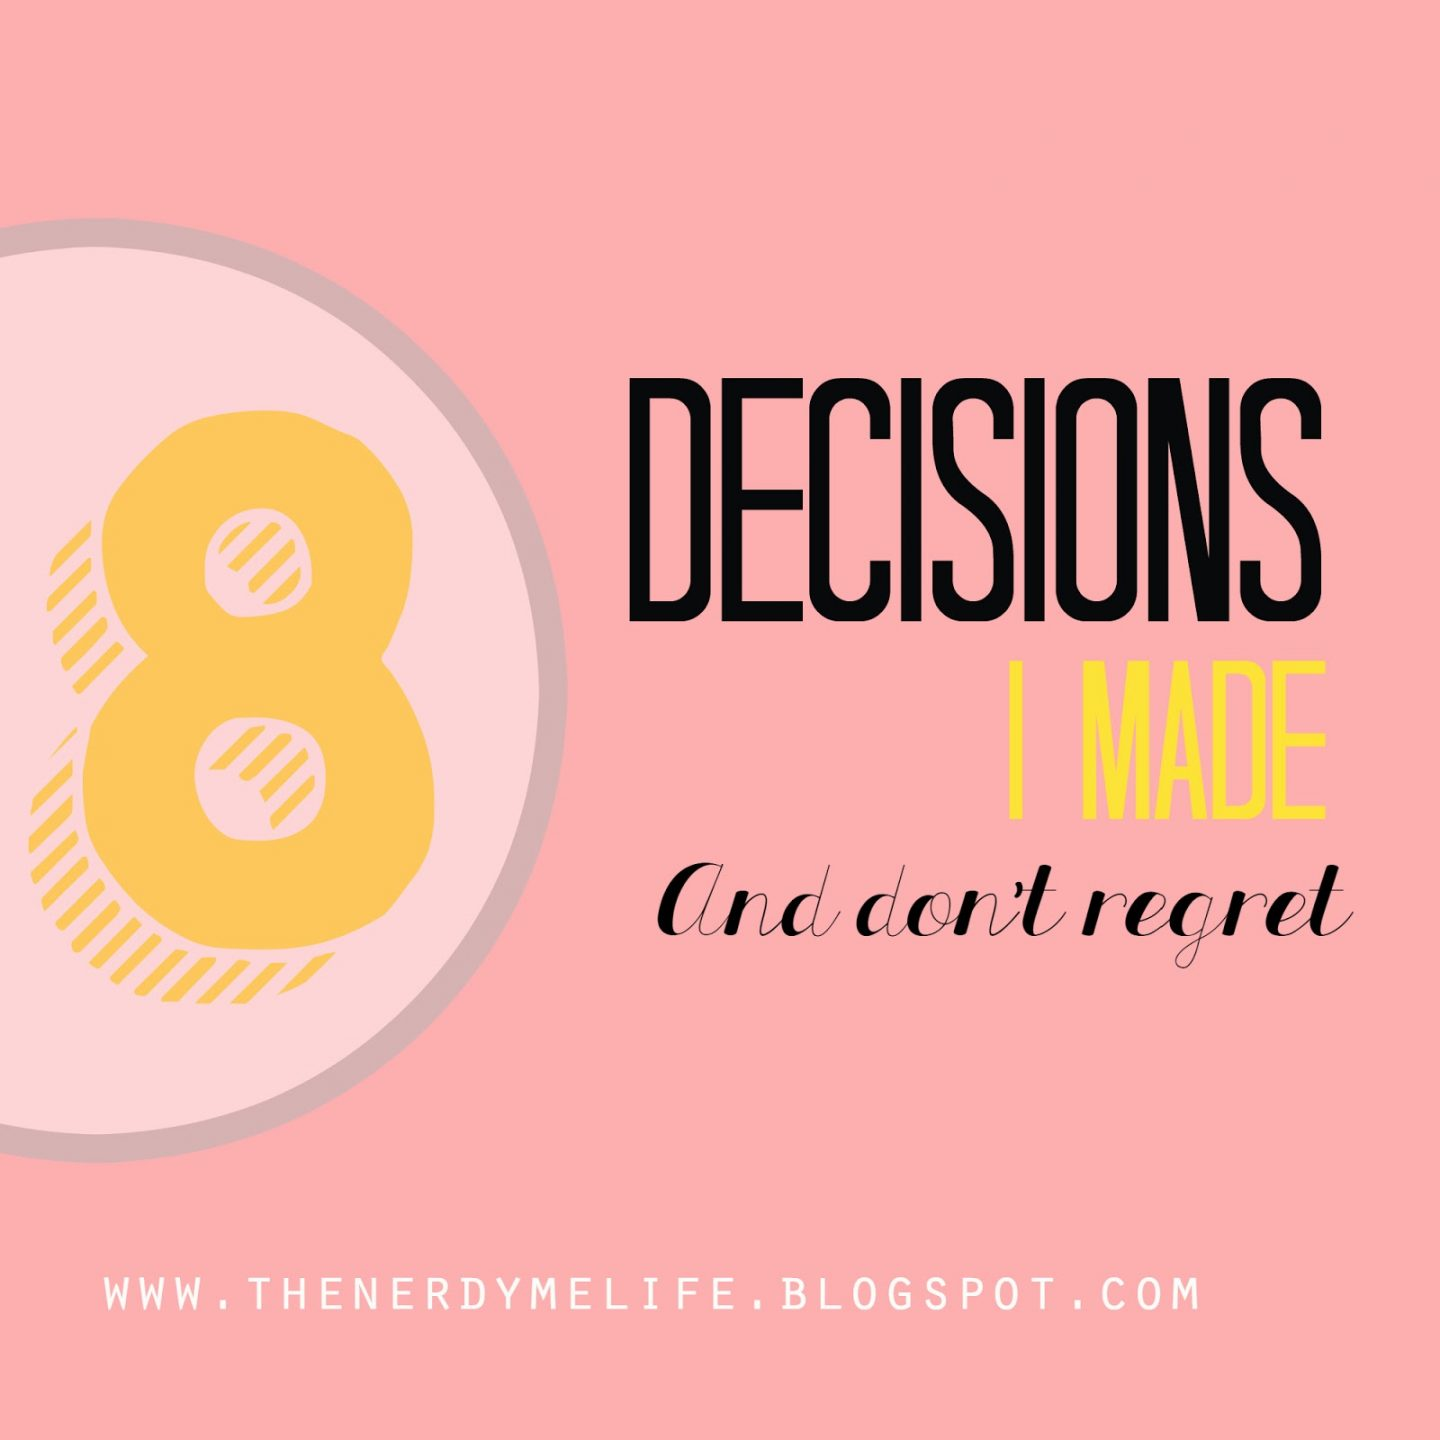 8 Decisions I Made And Don't Regret